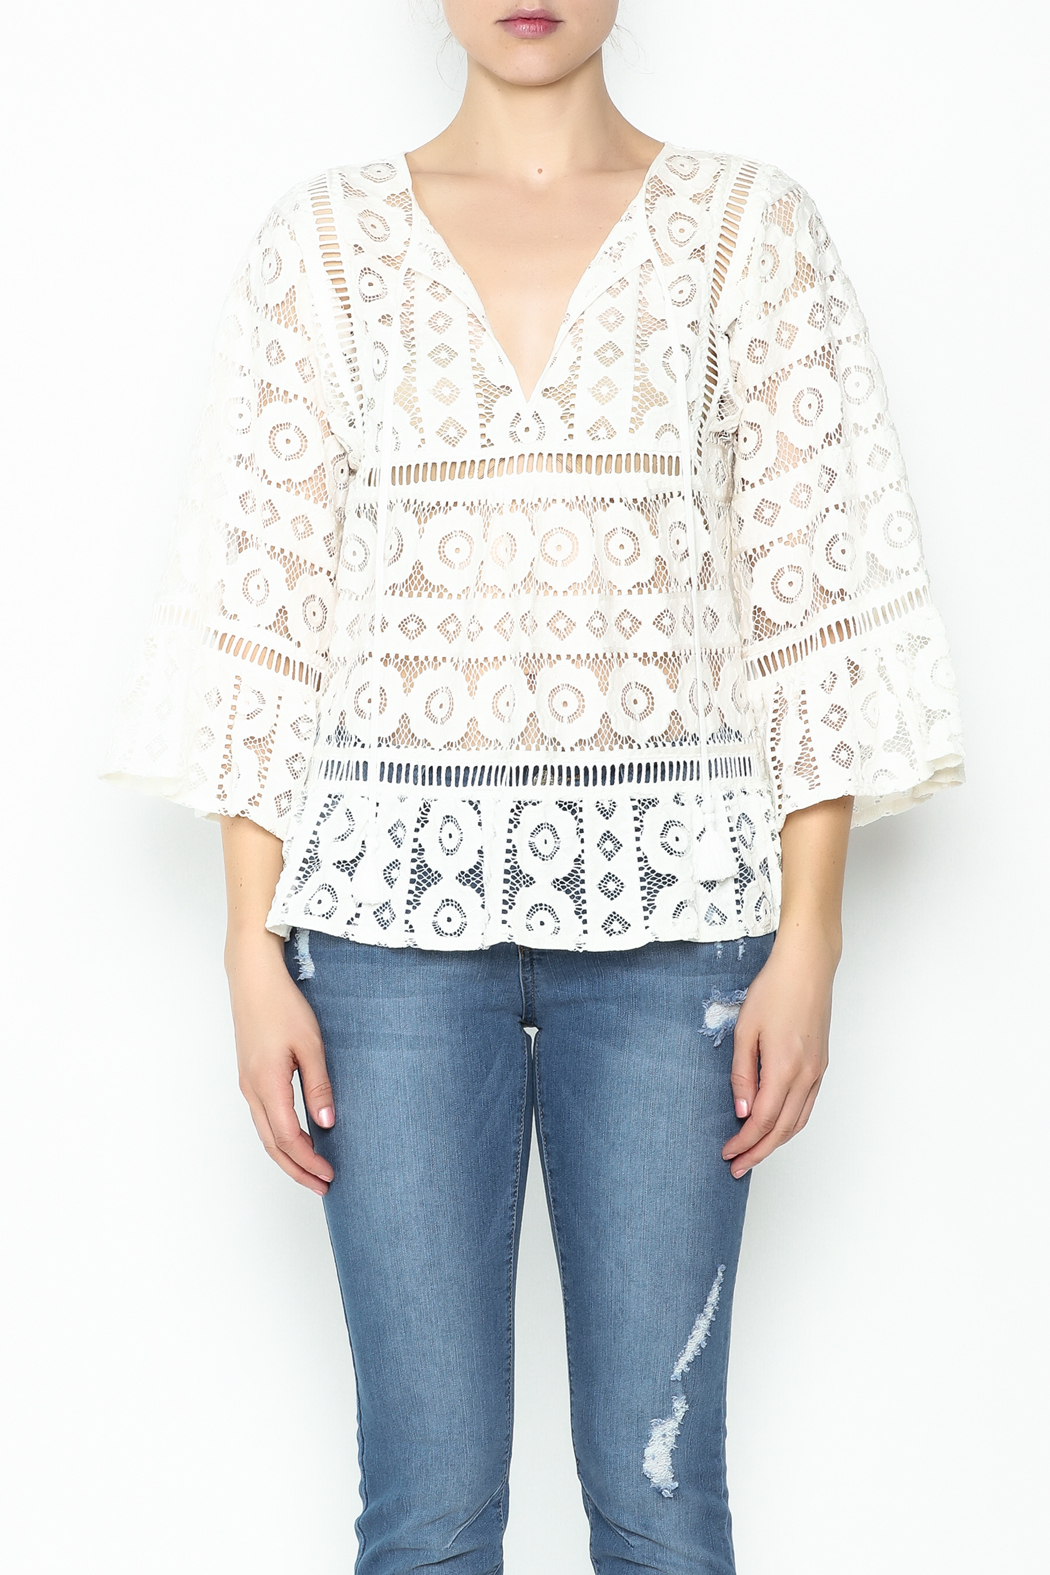 Tracy Reese Lace Blouse - Front Full Image